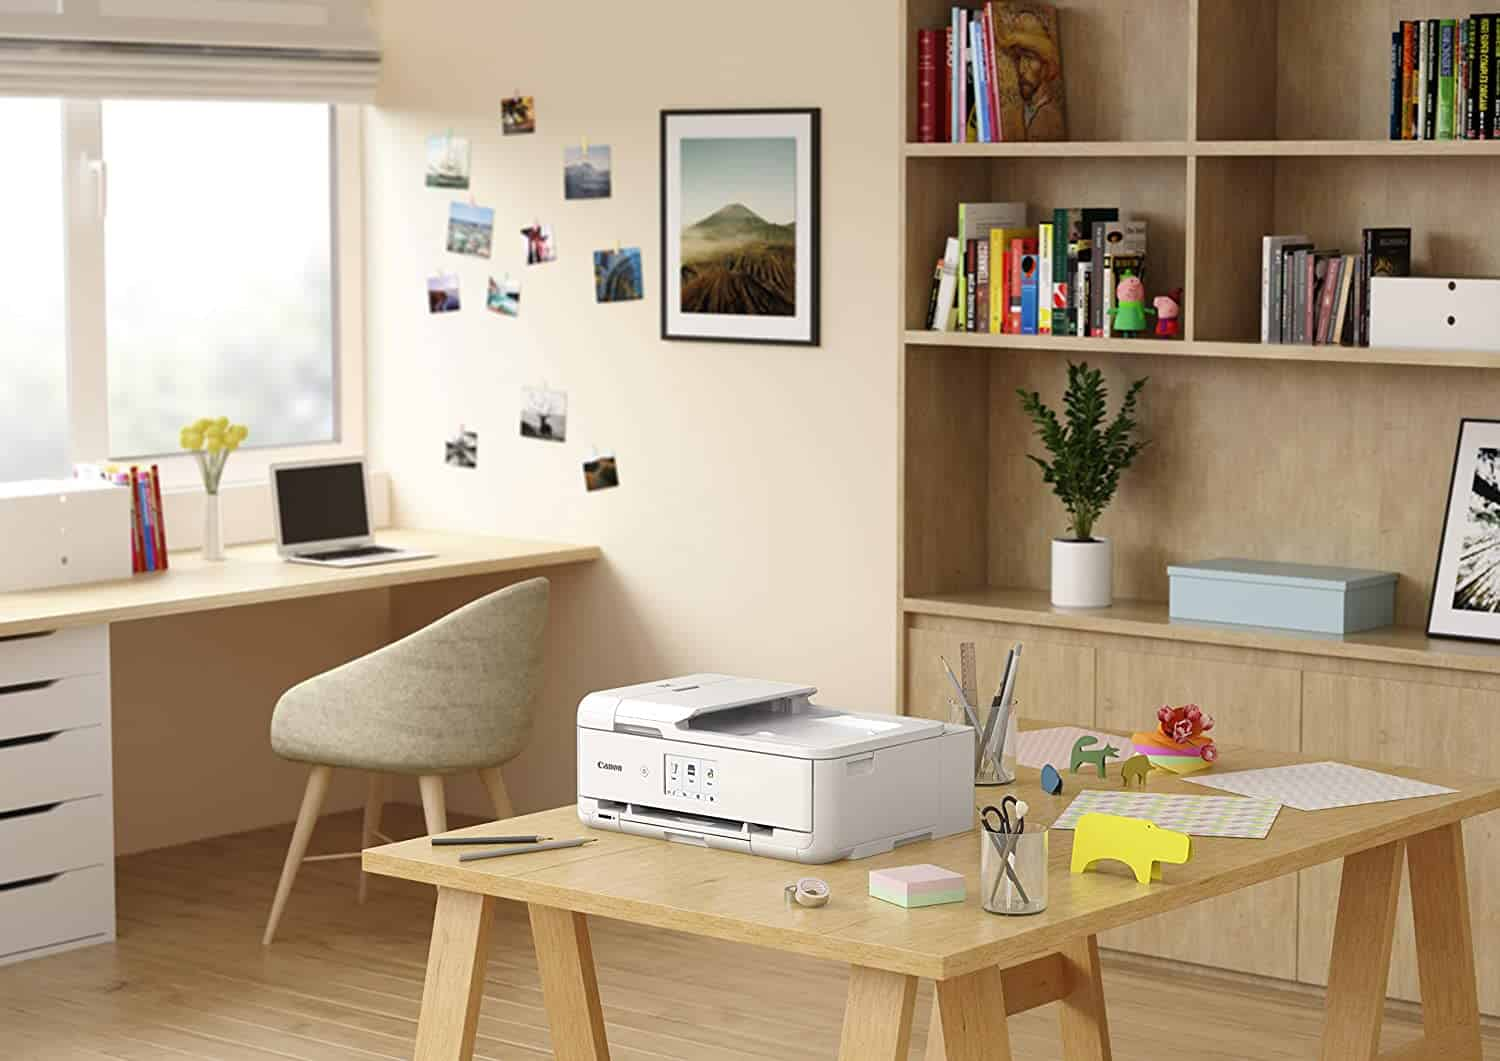 canon crafting printer ts9521c